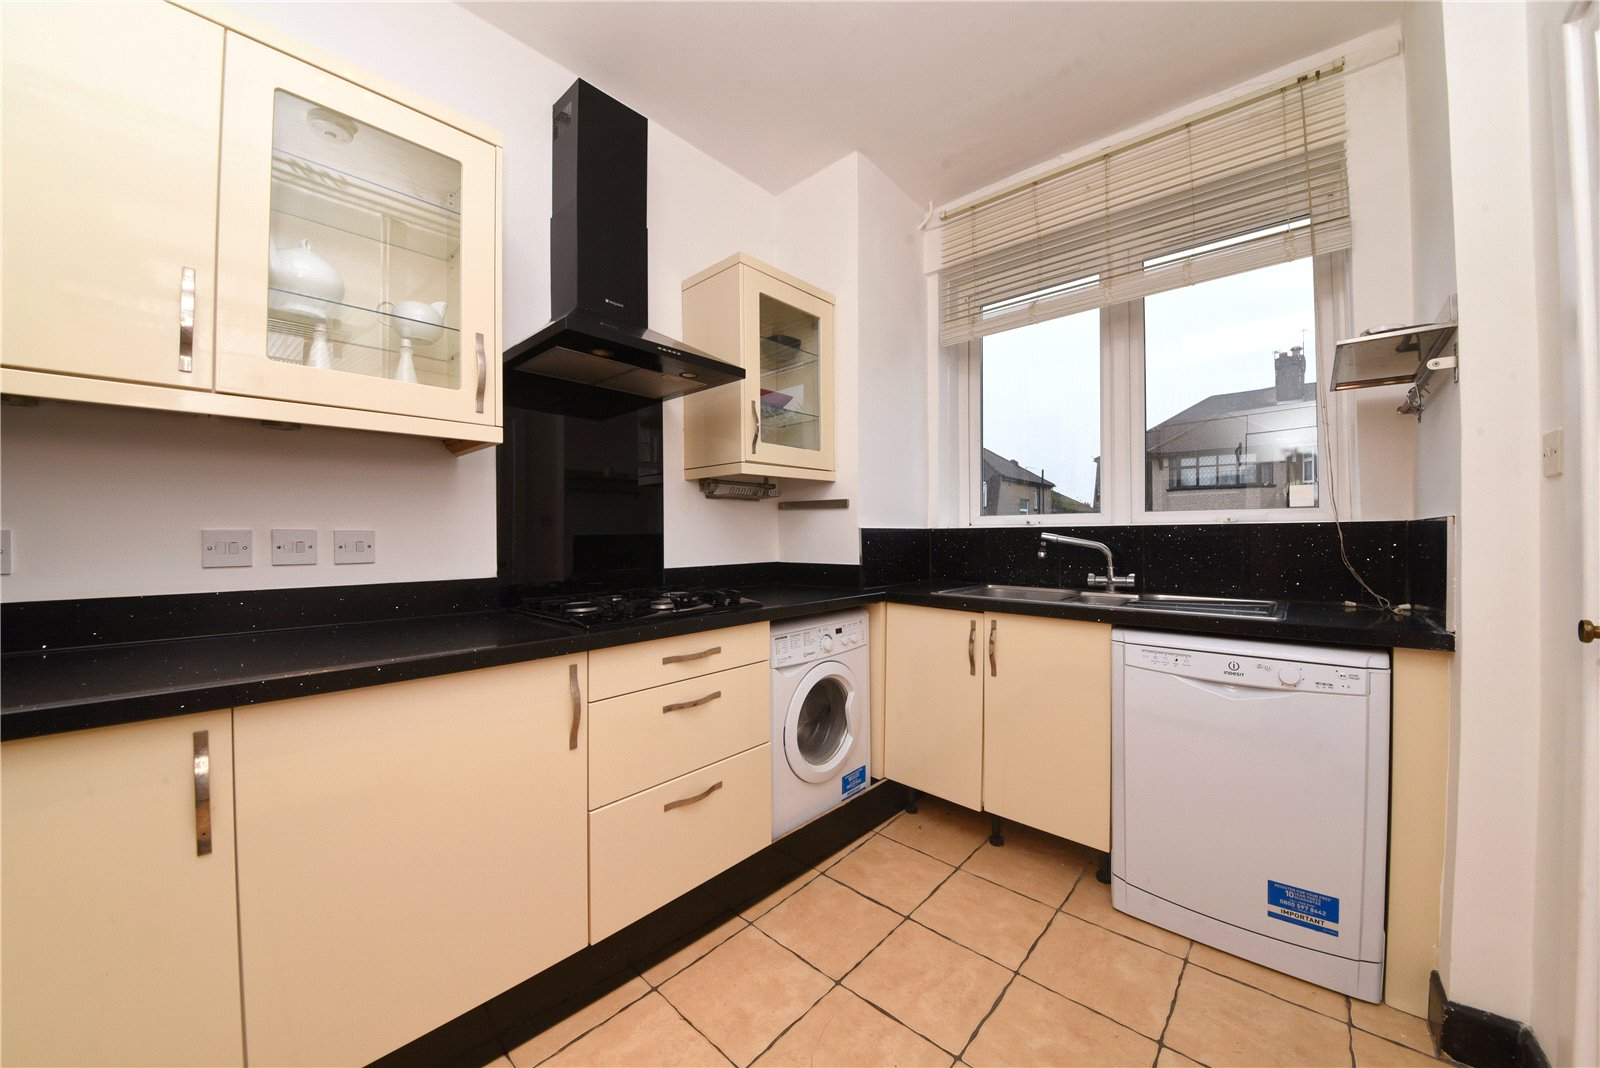 3 bed house for sale in High Barnet, EN5 1AL 1